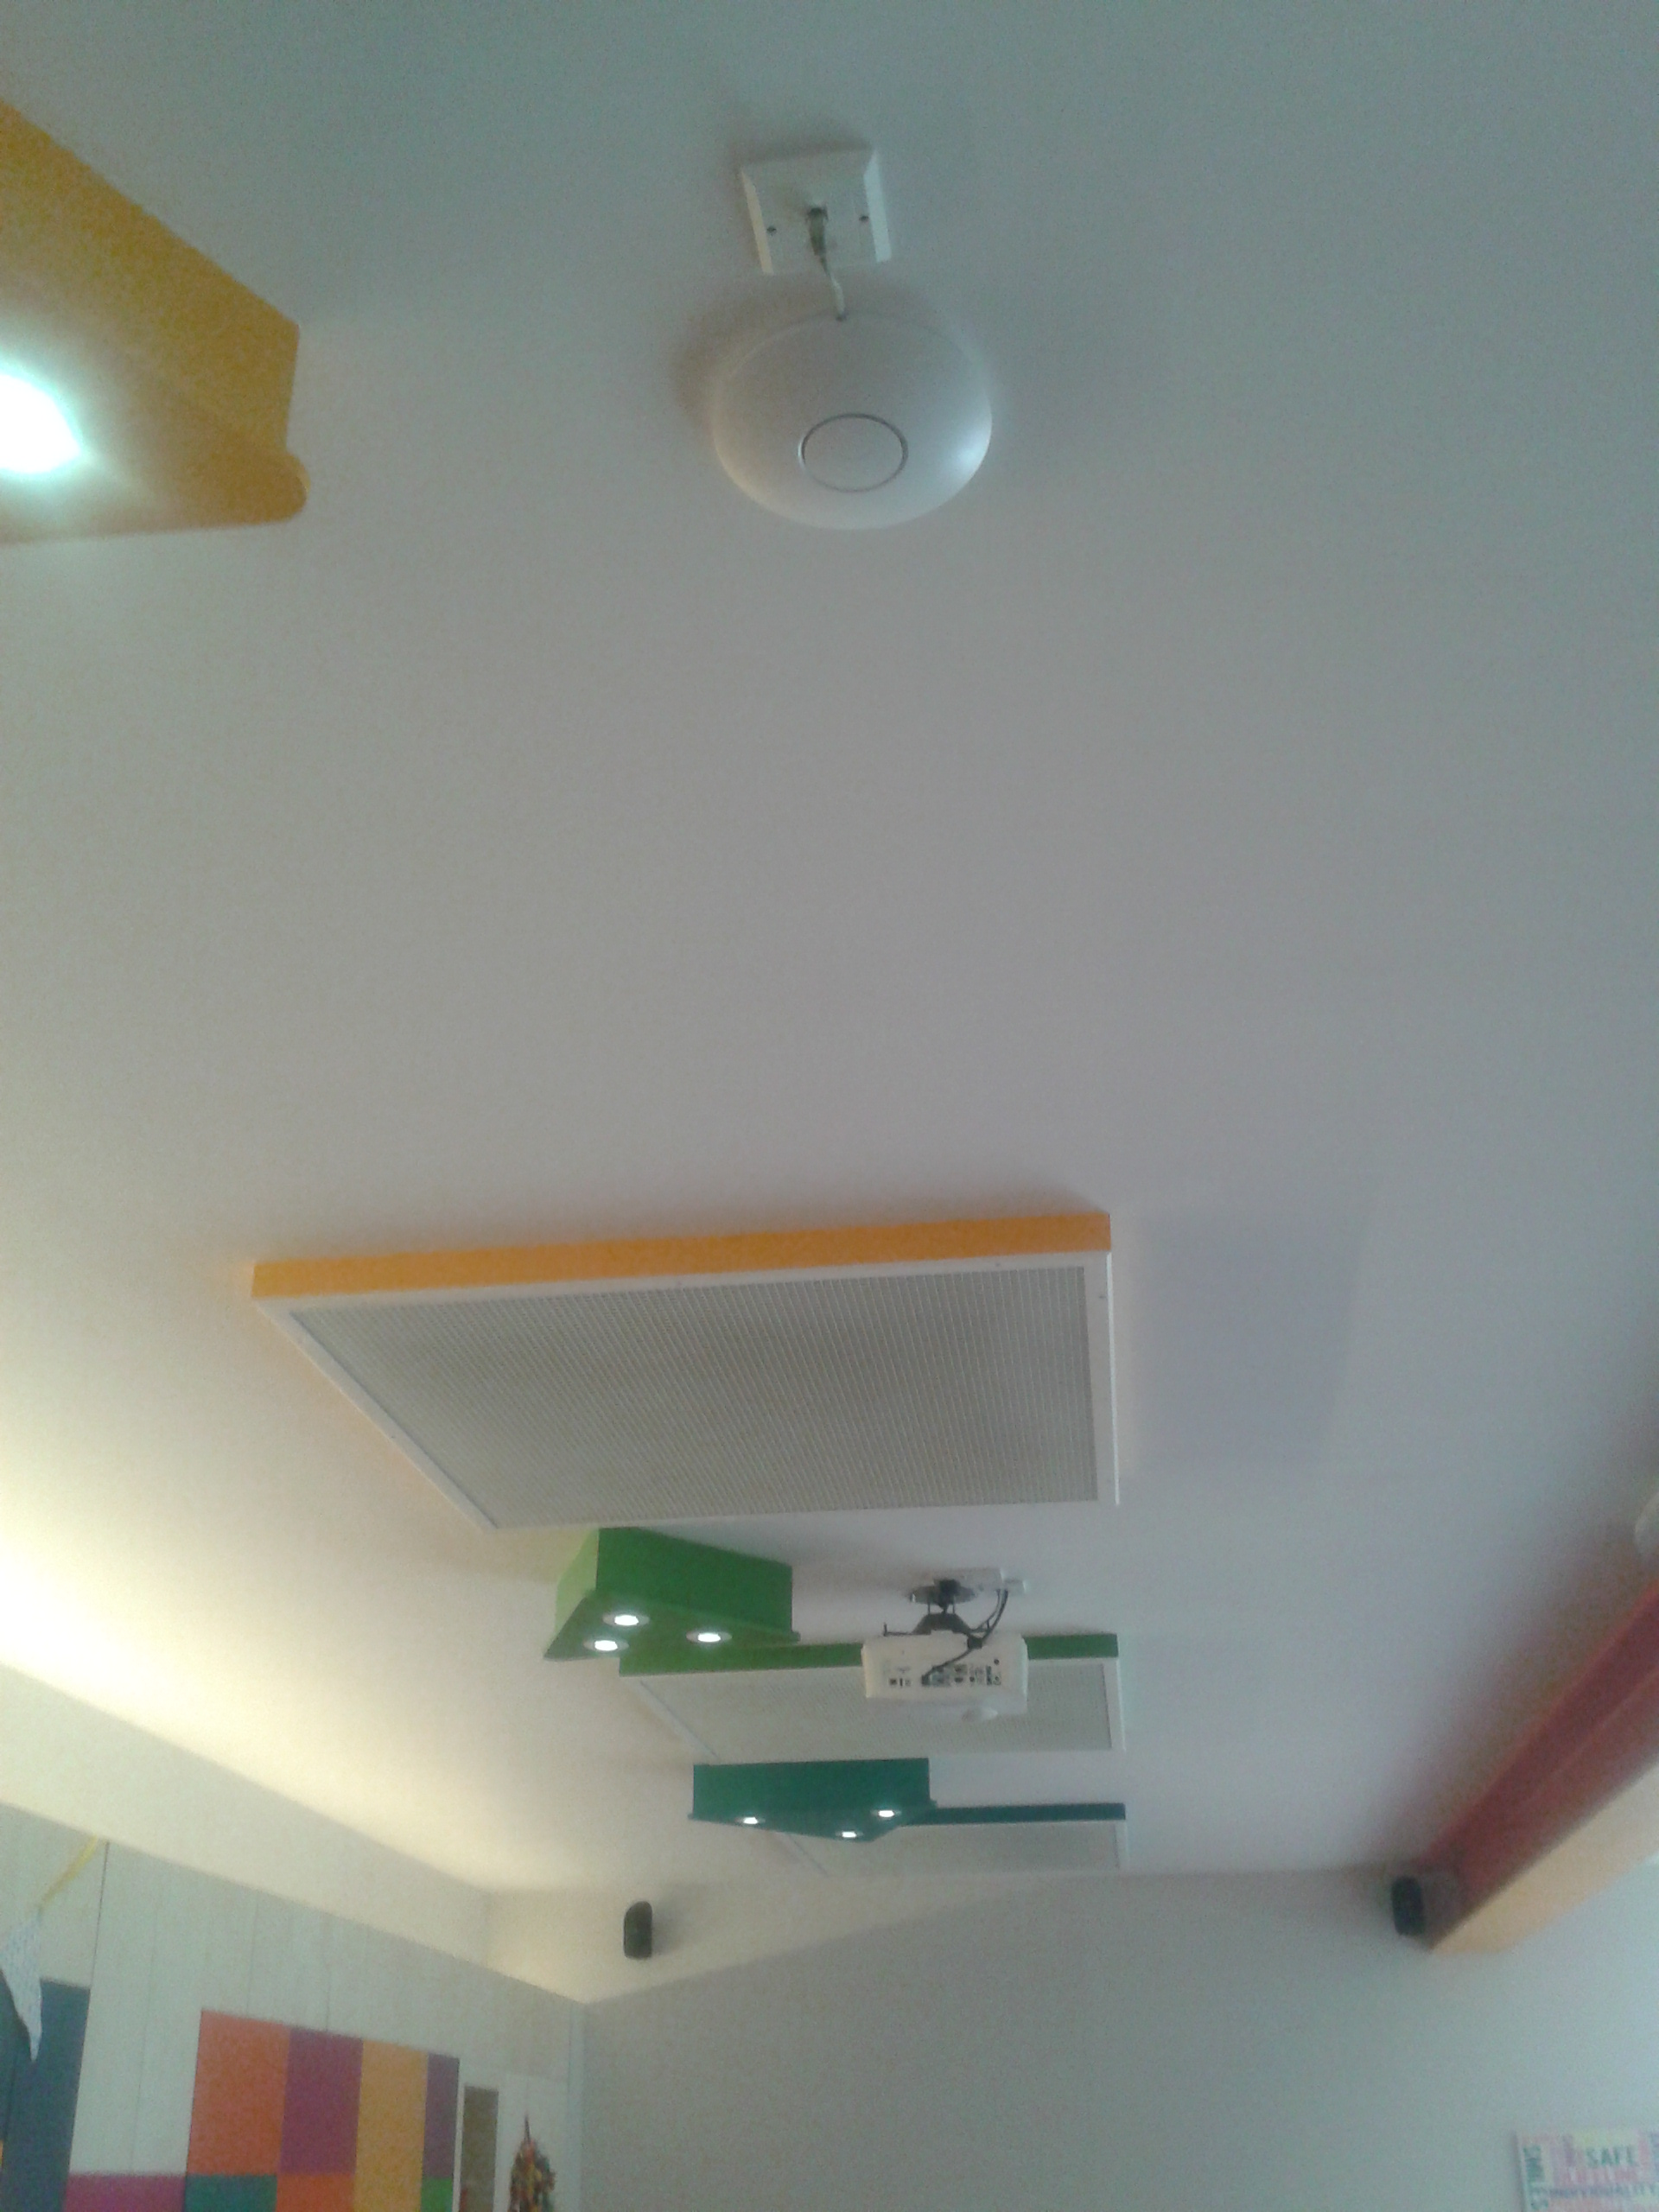 Ubiquiti UniFi Mounted on Ceiling